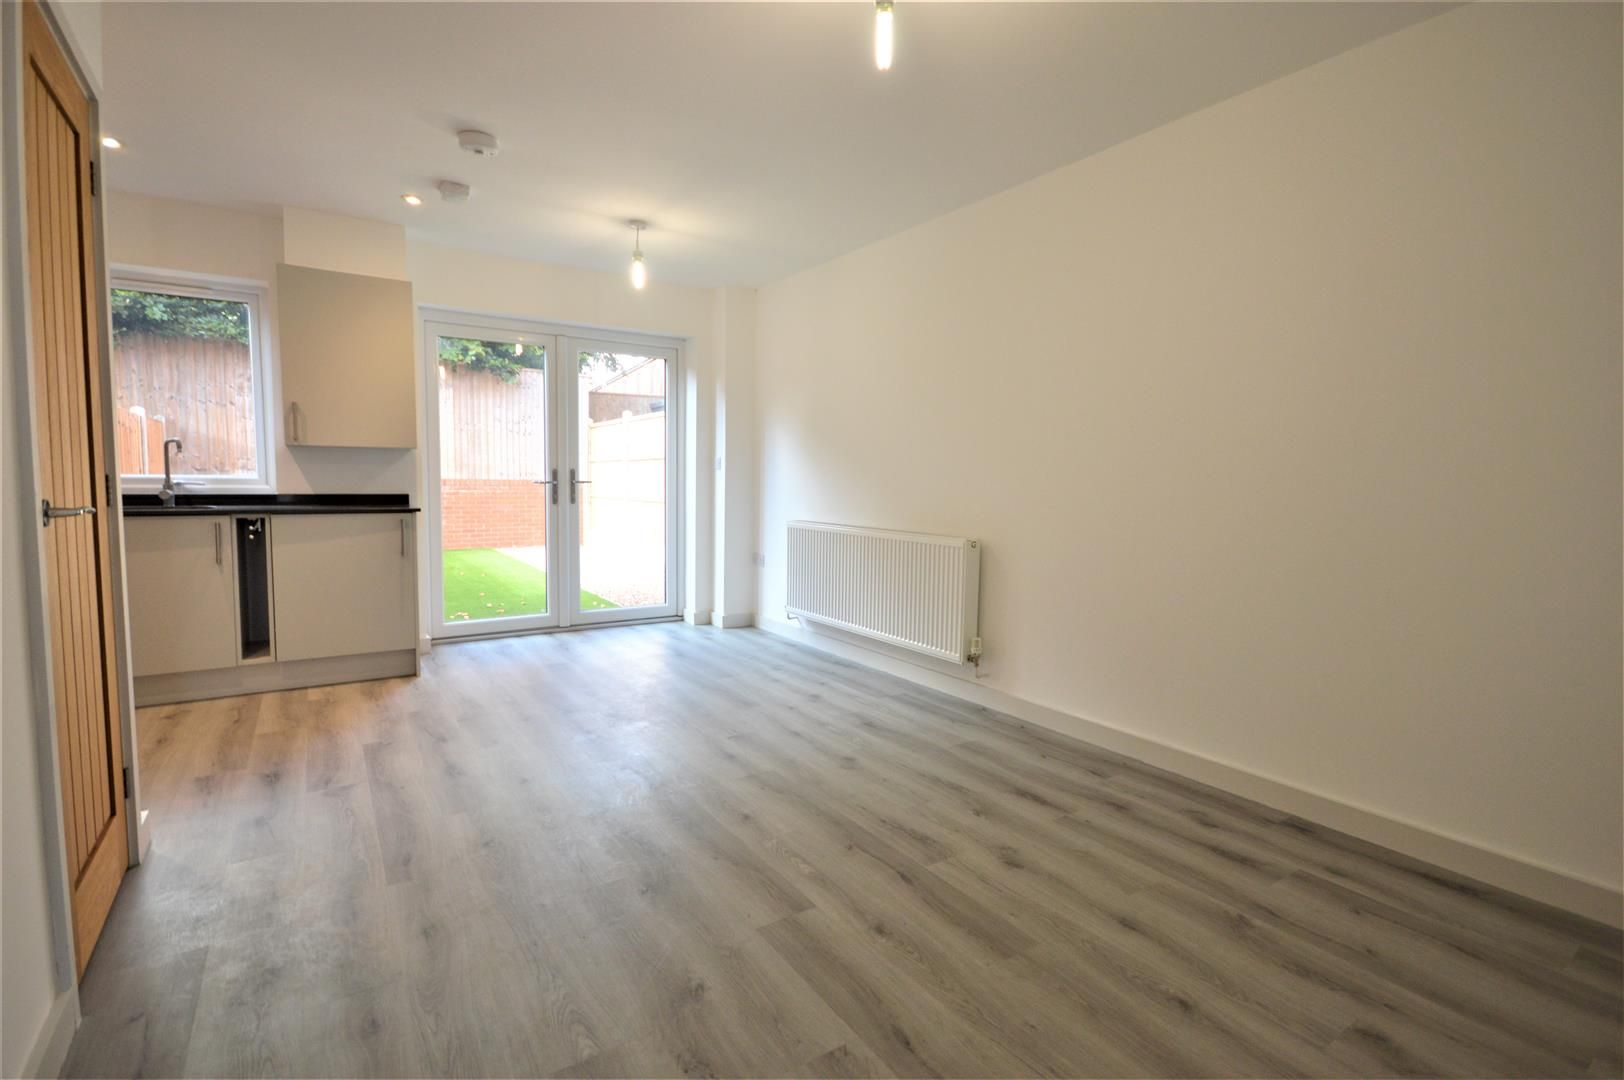 2 bed semi-detached for sale in Leominster  - Property Image 5